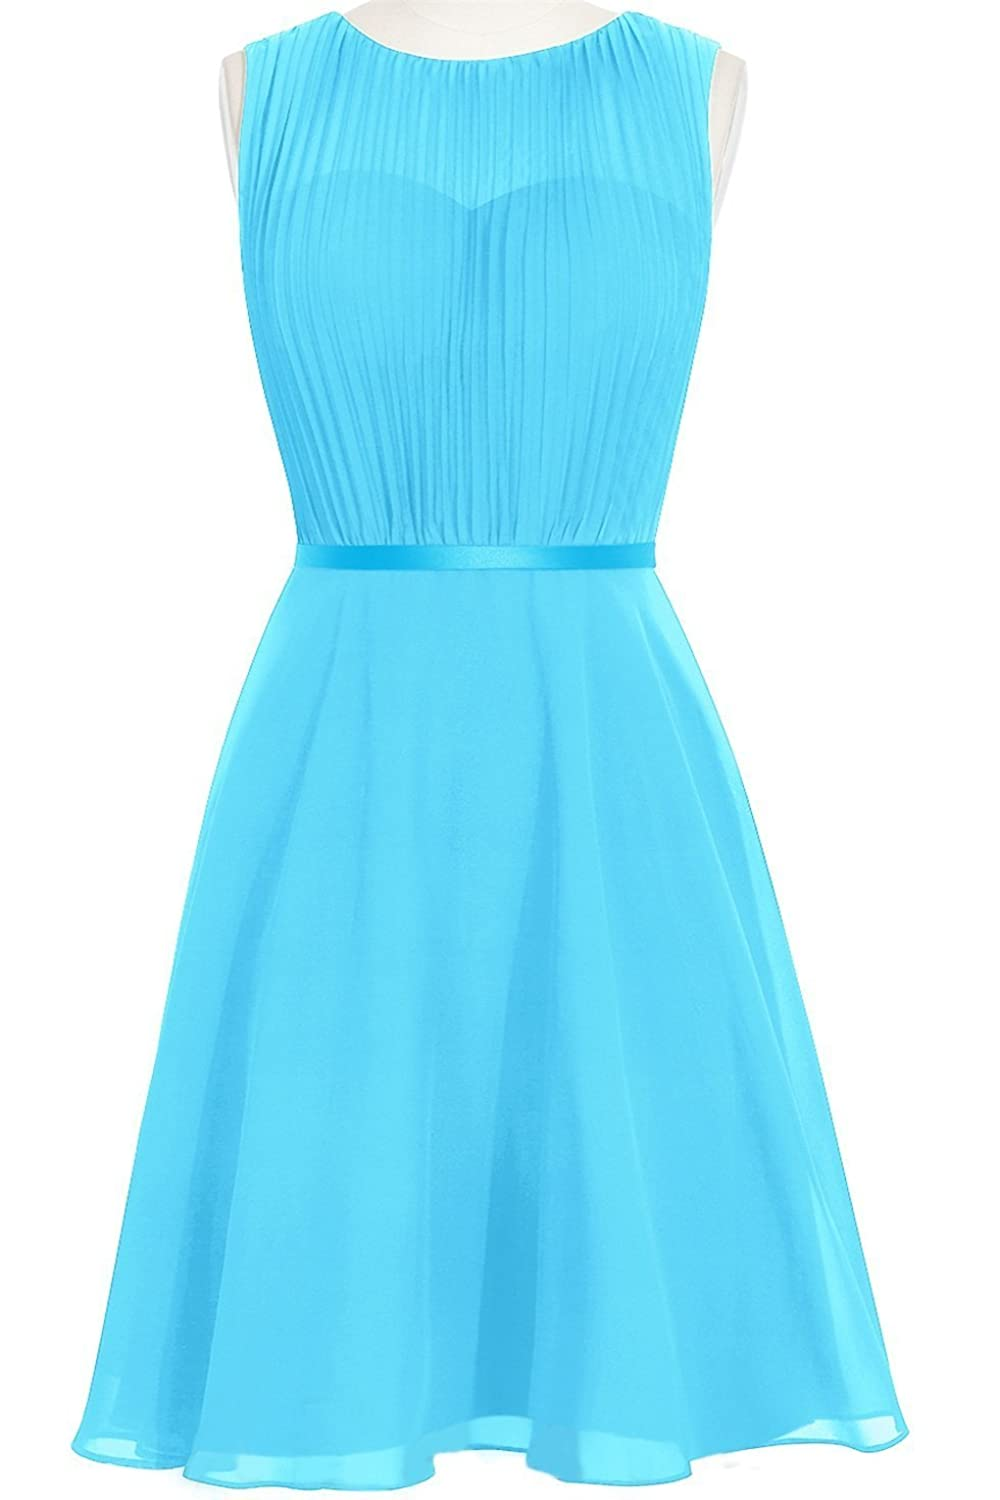 MittyDresses 2015 New Cocktail Homecoming Dresses for Girl Evening Party Size 22W US Pool